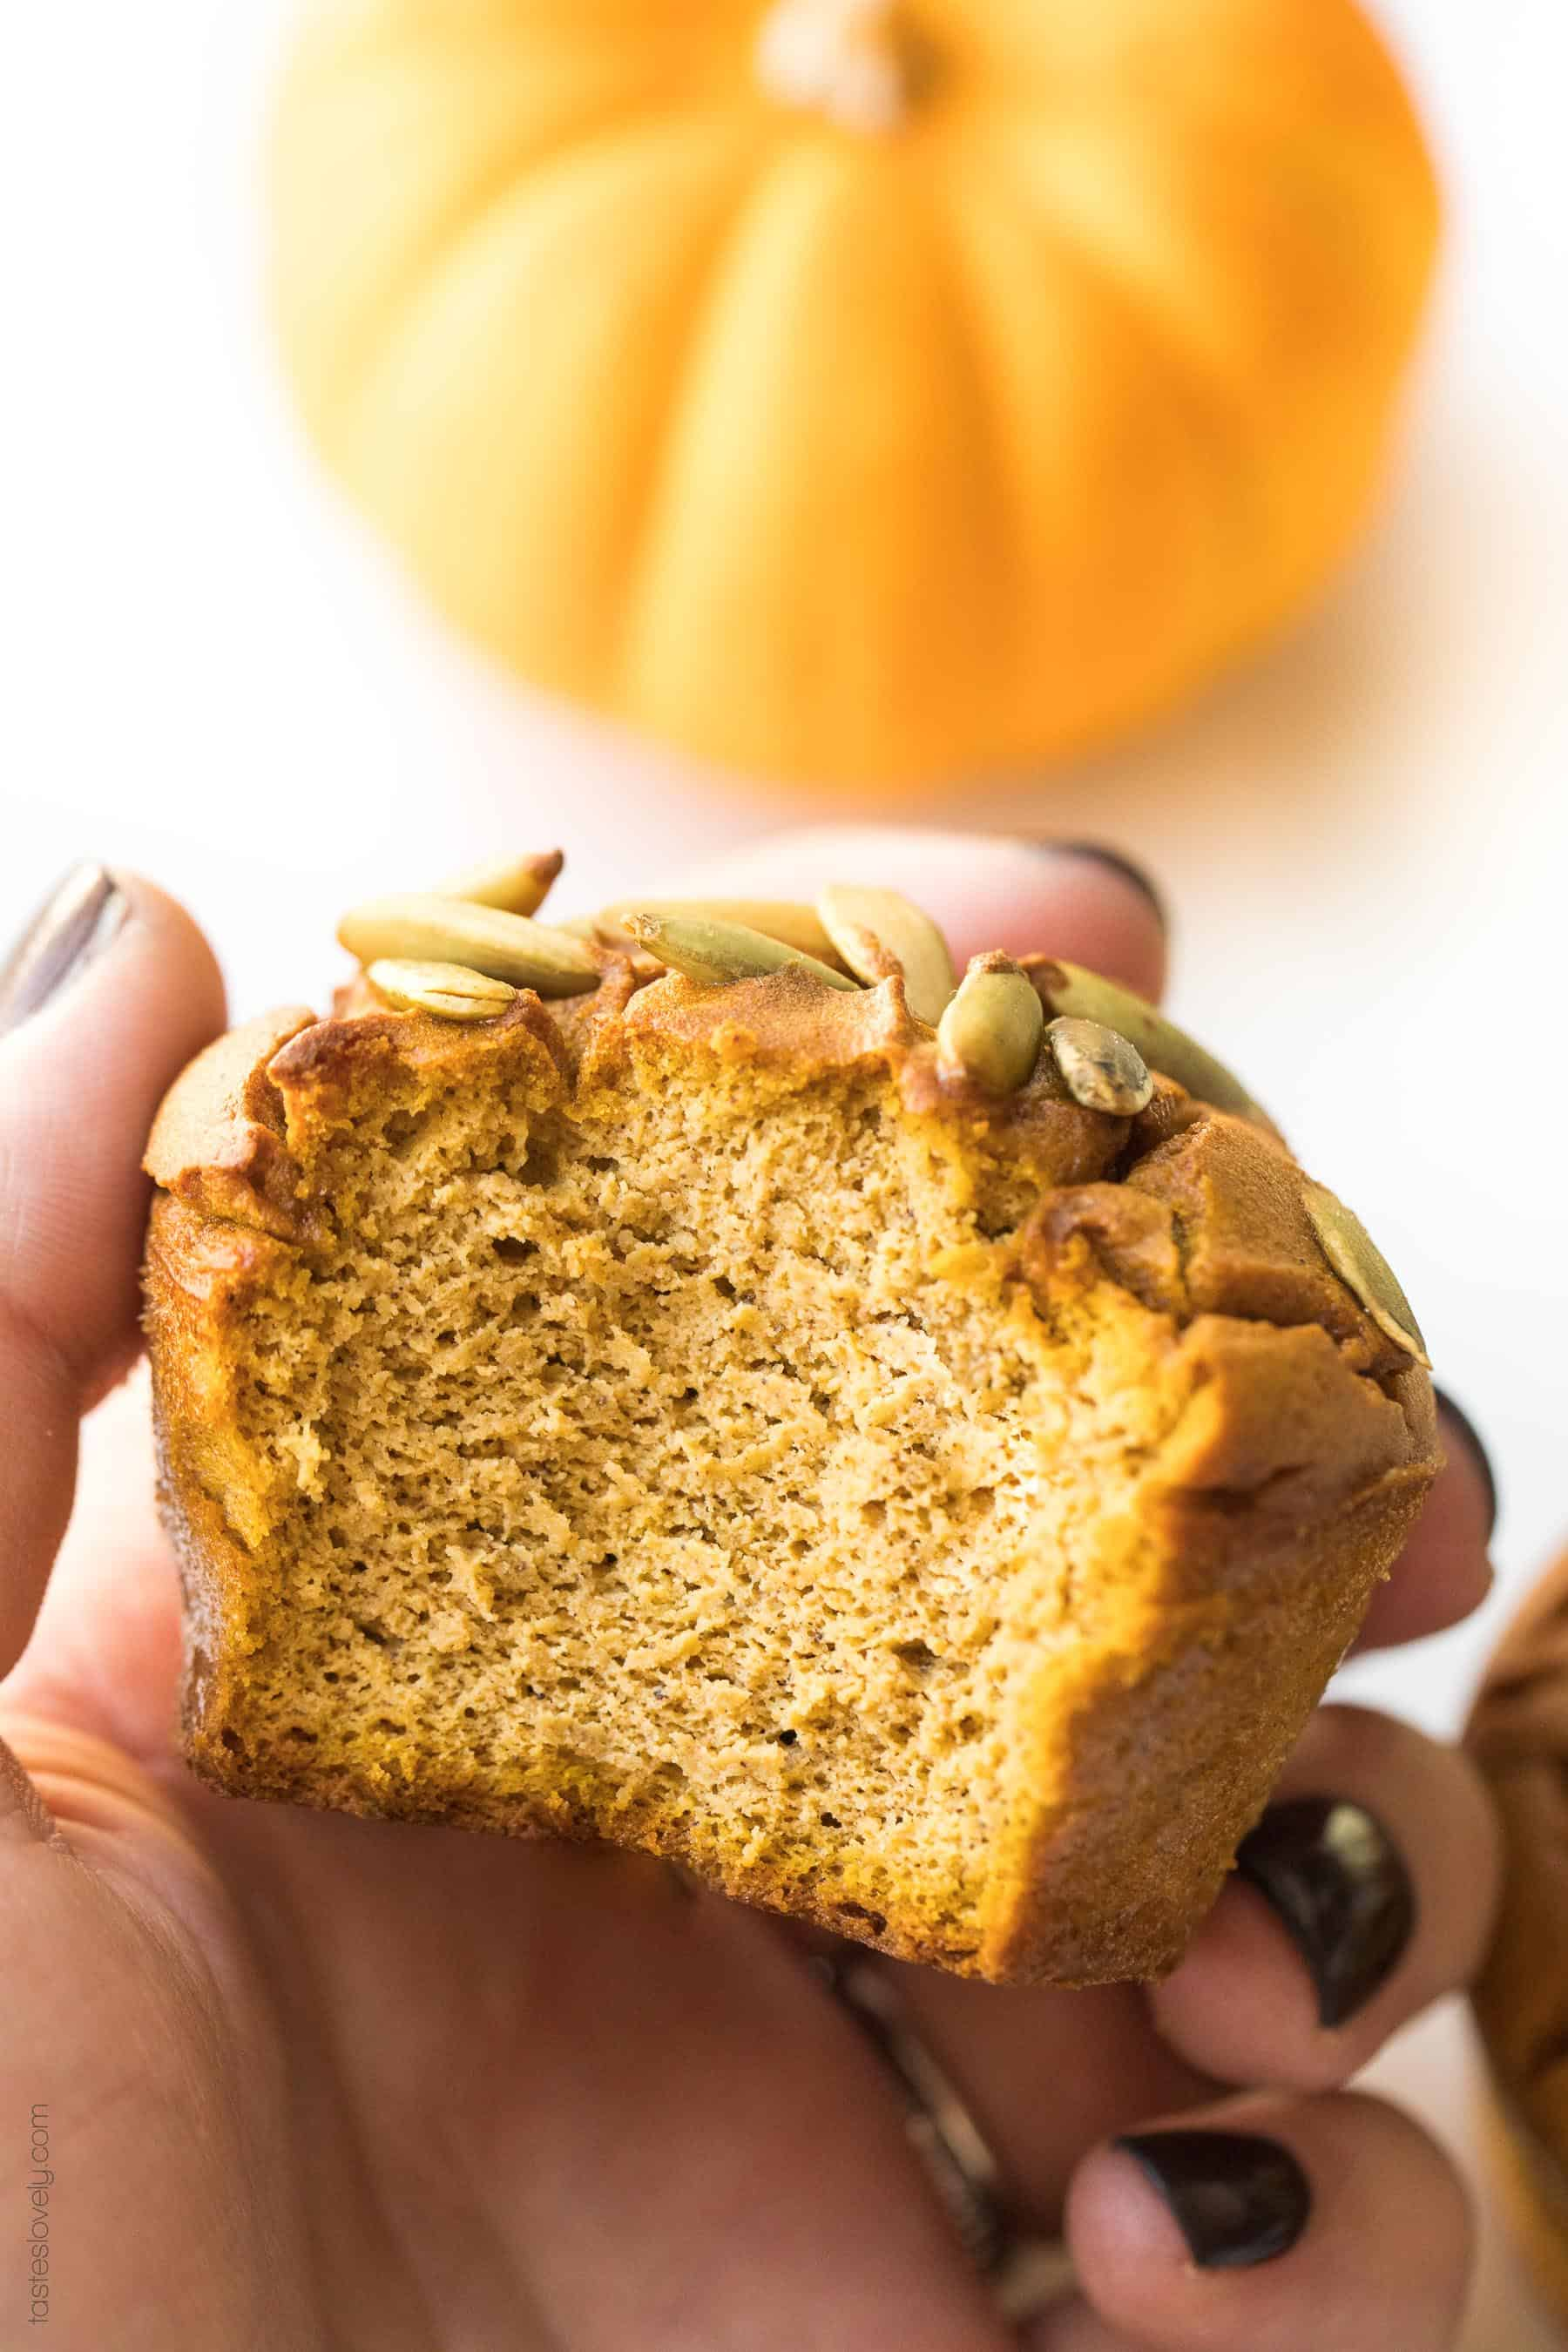 a hand holding a paleo pumpkin muffin that has a bite taken out of it